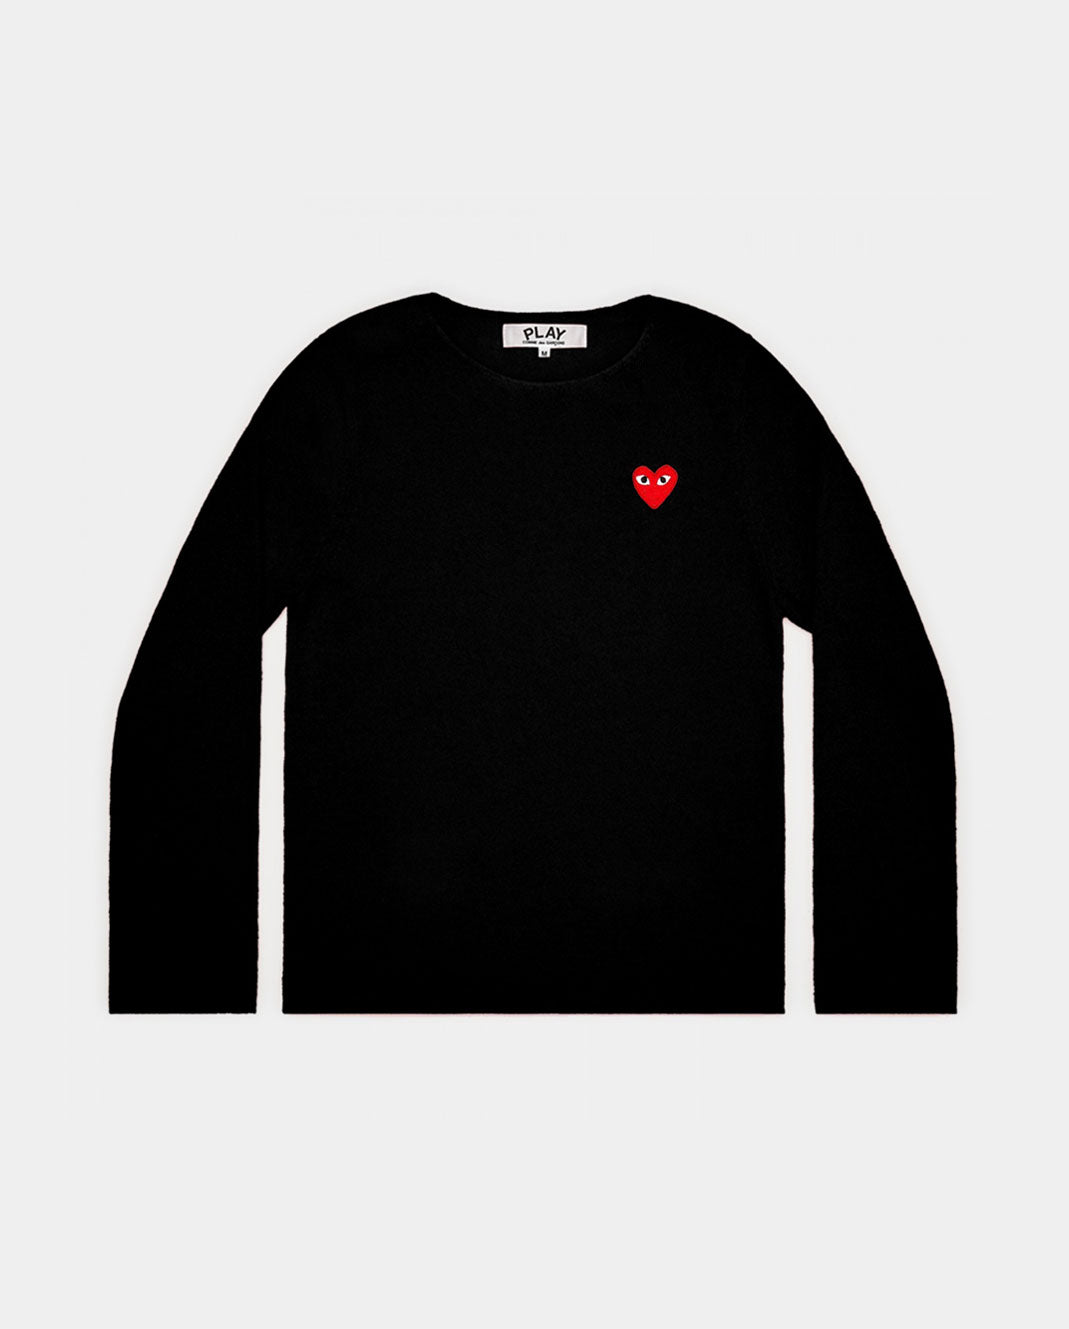 N067 CREW NECK JUMPER / BLACK